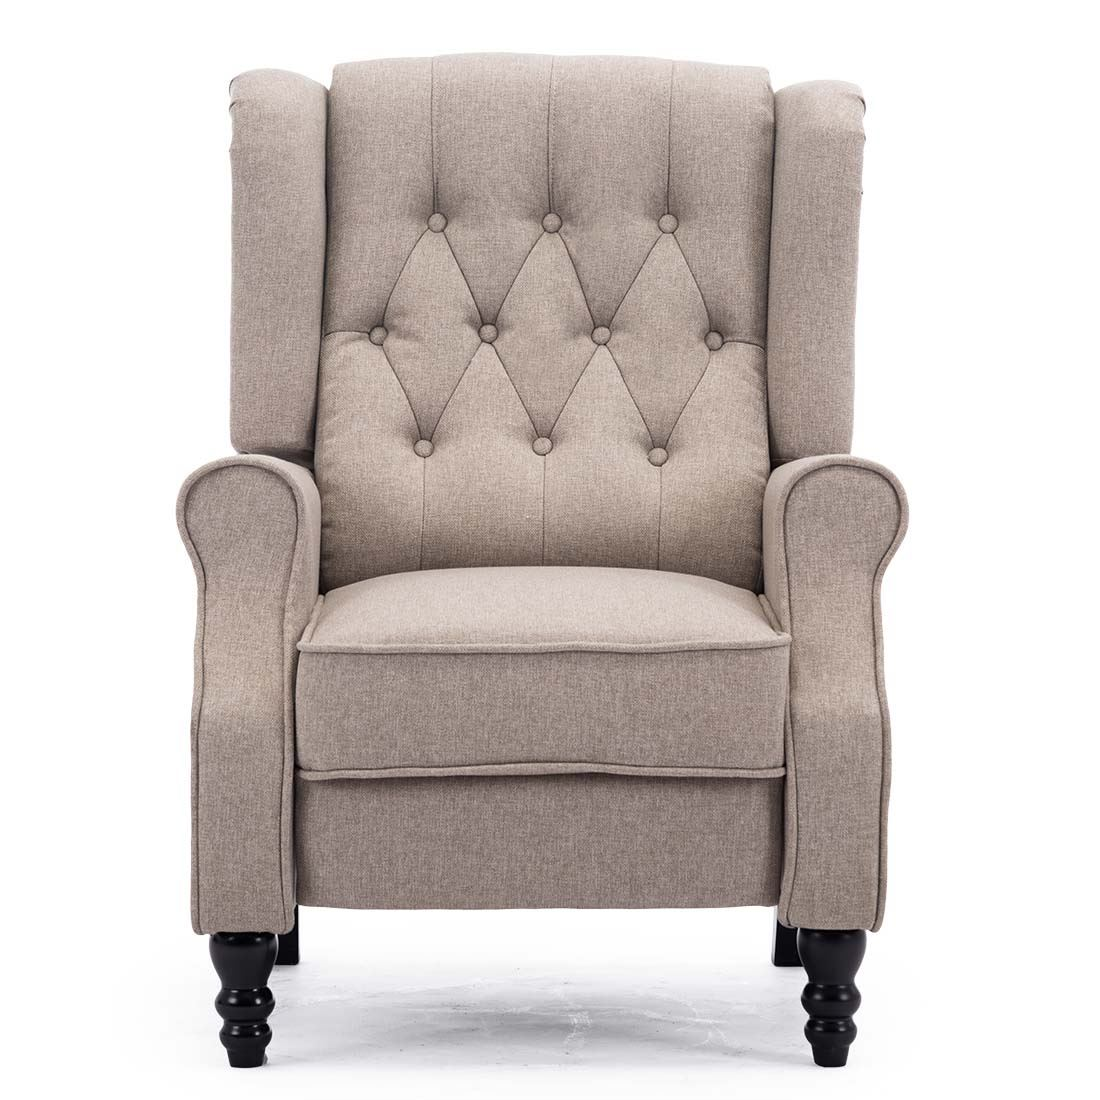 Details about ALTHORPE WING BACK RECLINER CHAIR FABRIC BUTTON FIRESIDE OCCASIONAL ARMCHAIR